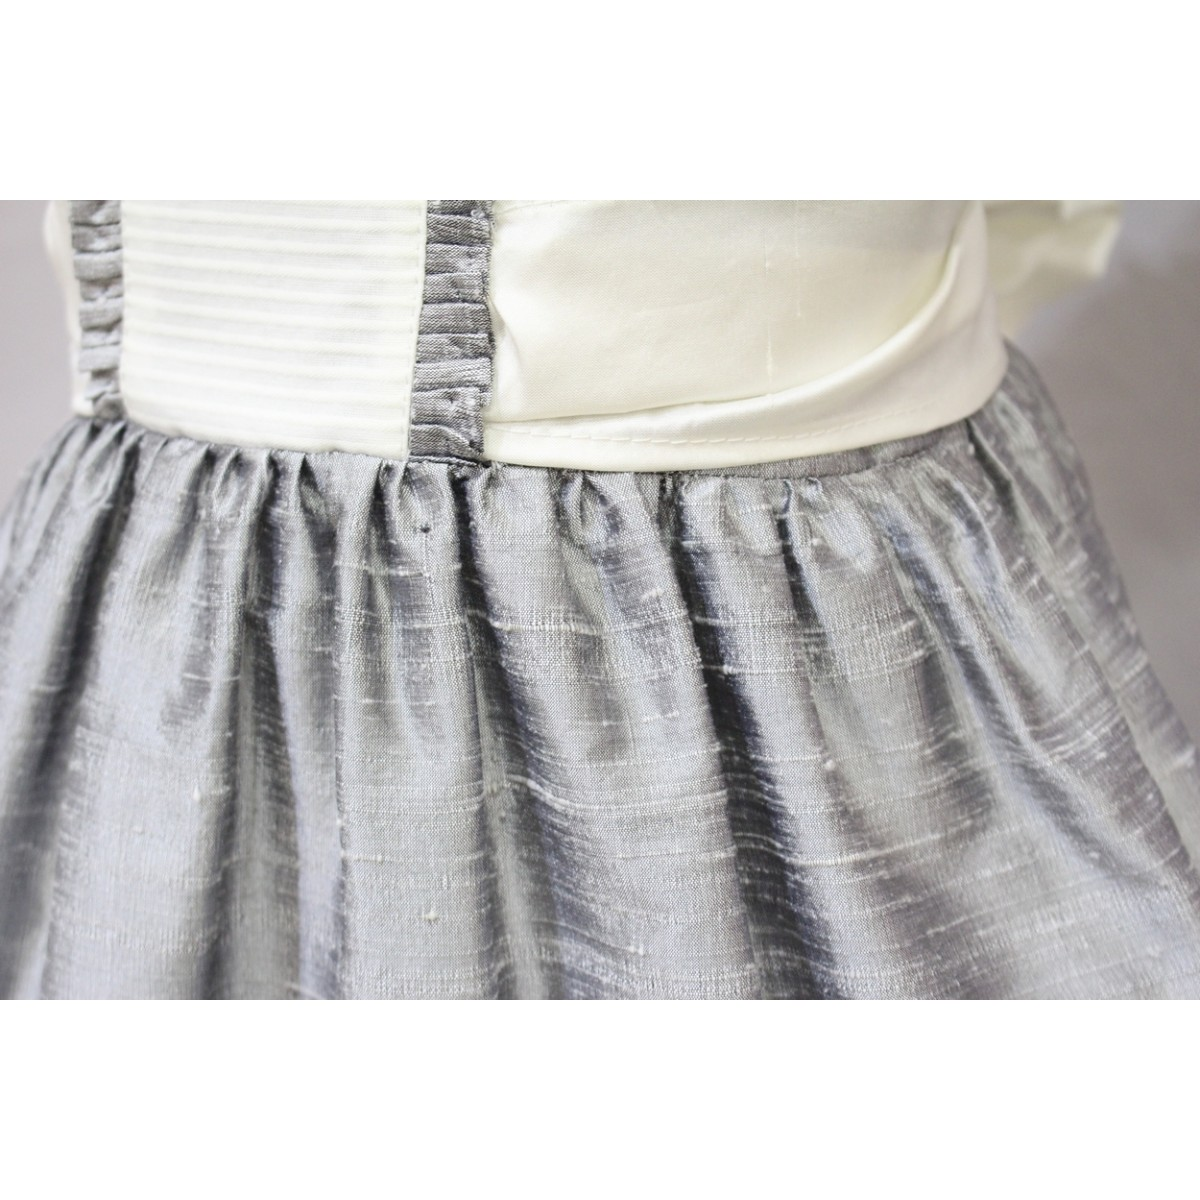 Grey Silk Flower Girl Dress With Ivory Silk Golositos Ropa Infantil